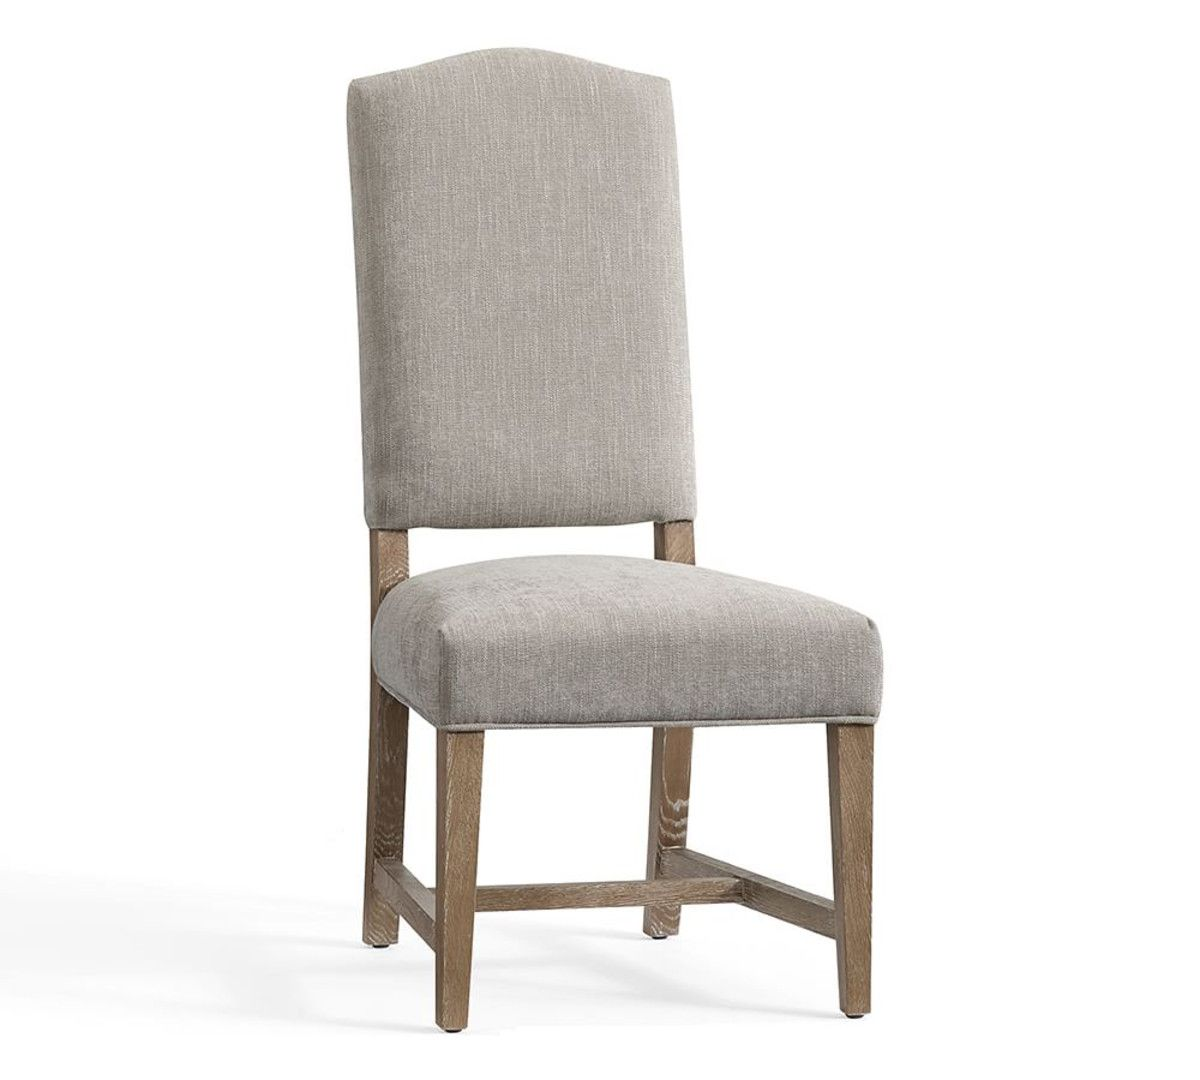 Ashton Non Tufted Dining Chair   Silver Taupe